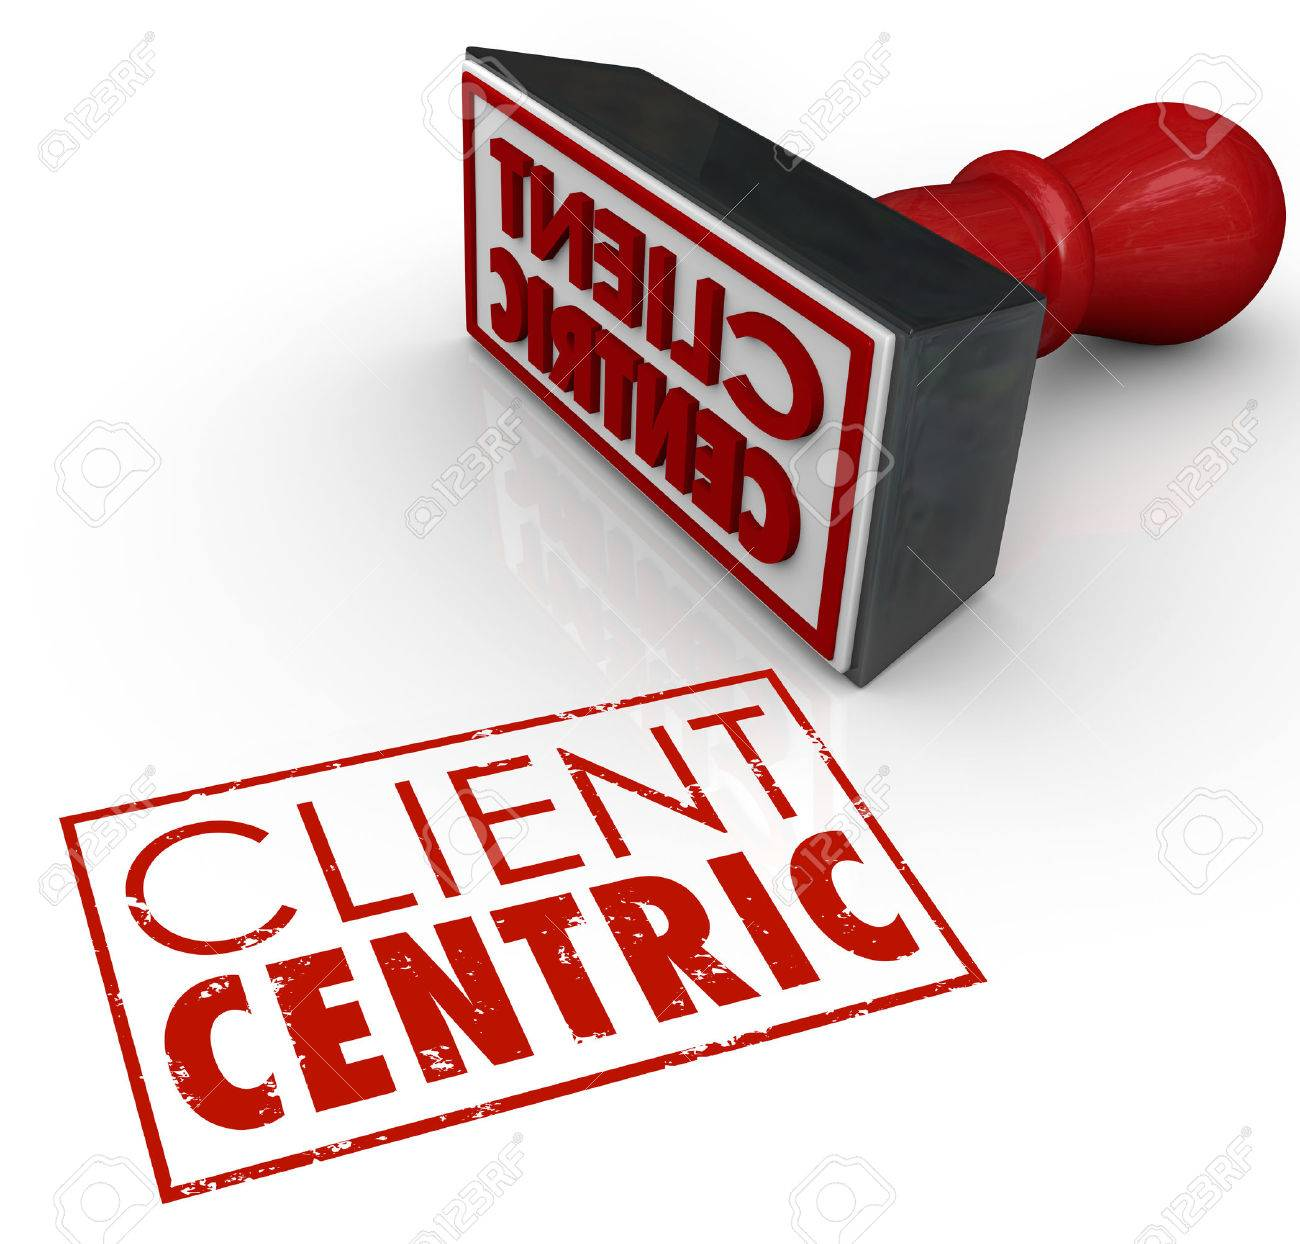 client centric words stamped in red ink certifying a company stock